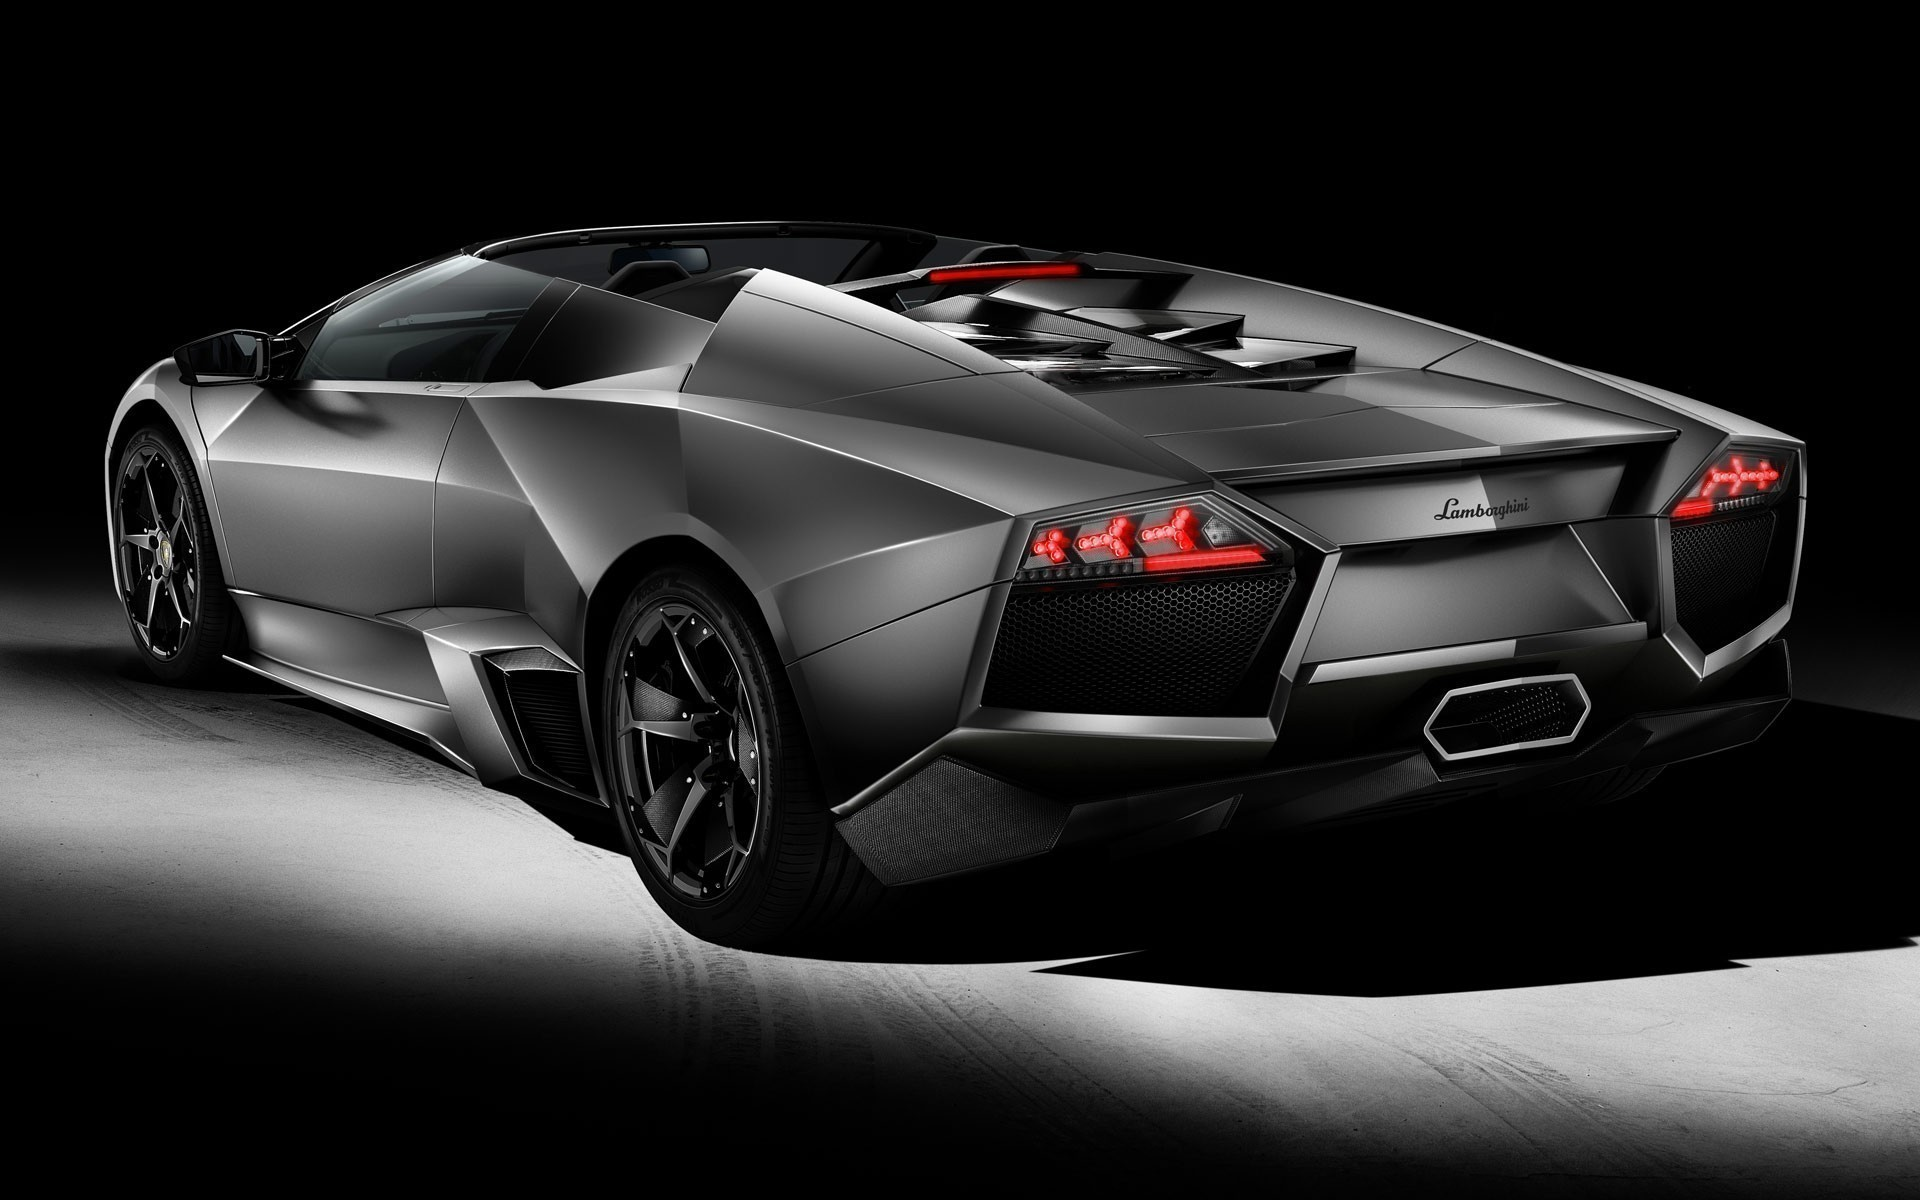 cars Lamborghini vehicles Supercars HD Wallpaper